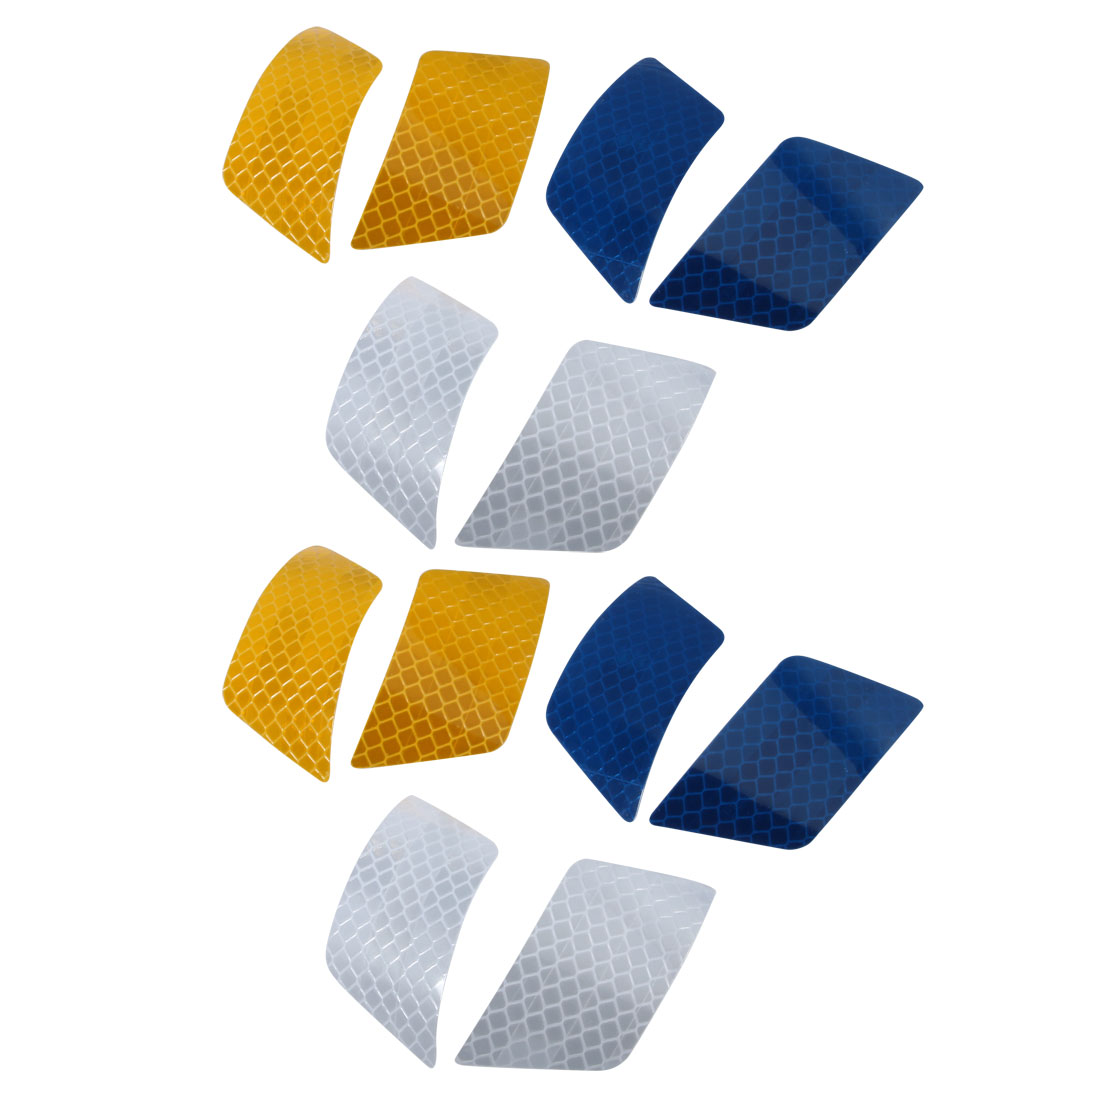 6Pair Reflective Warning Tape Strip Sticker Orange Blue White 30mmx70mm for Car